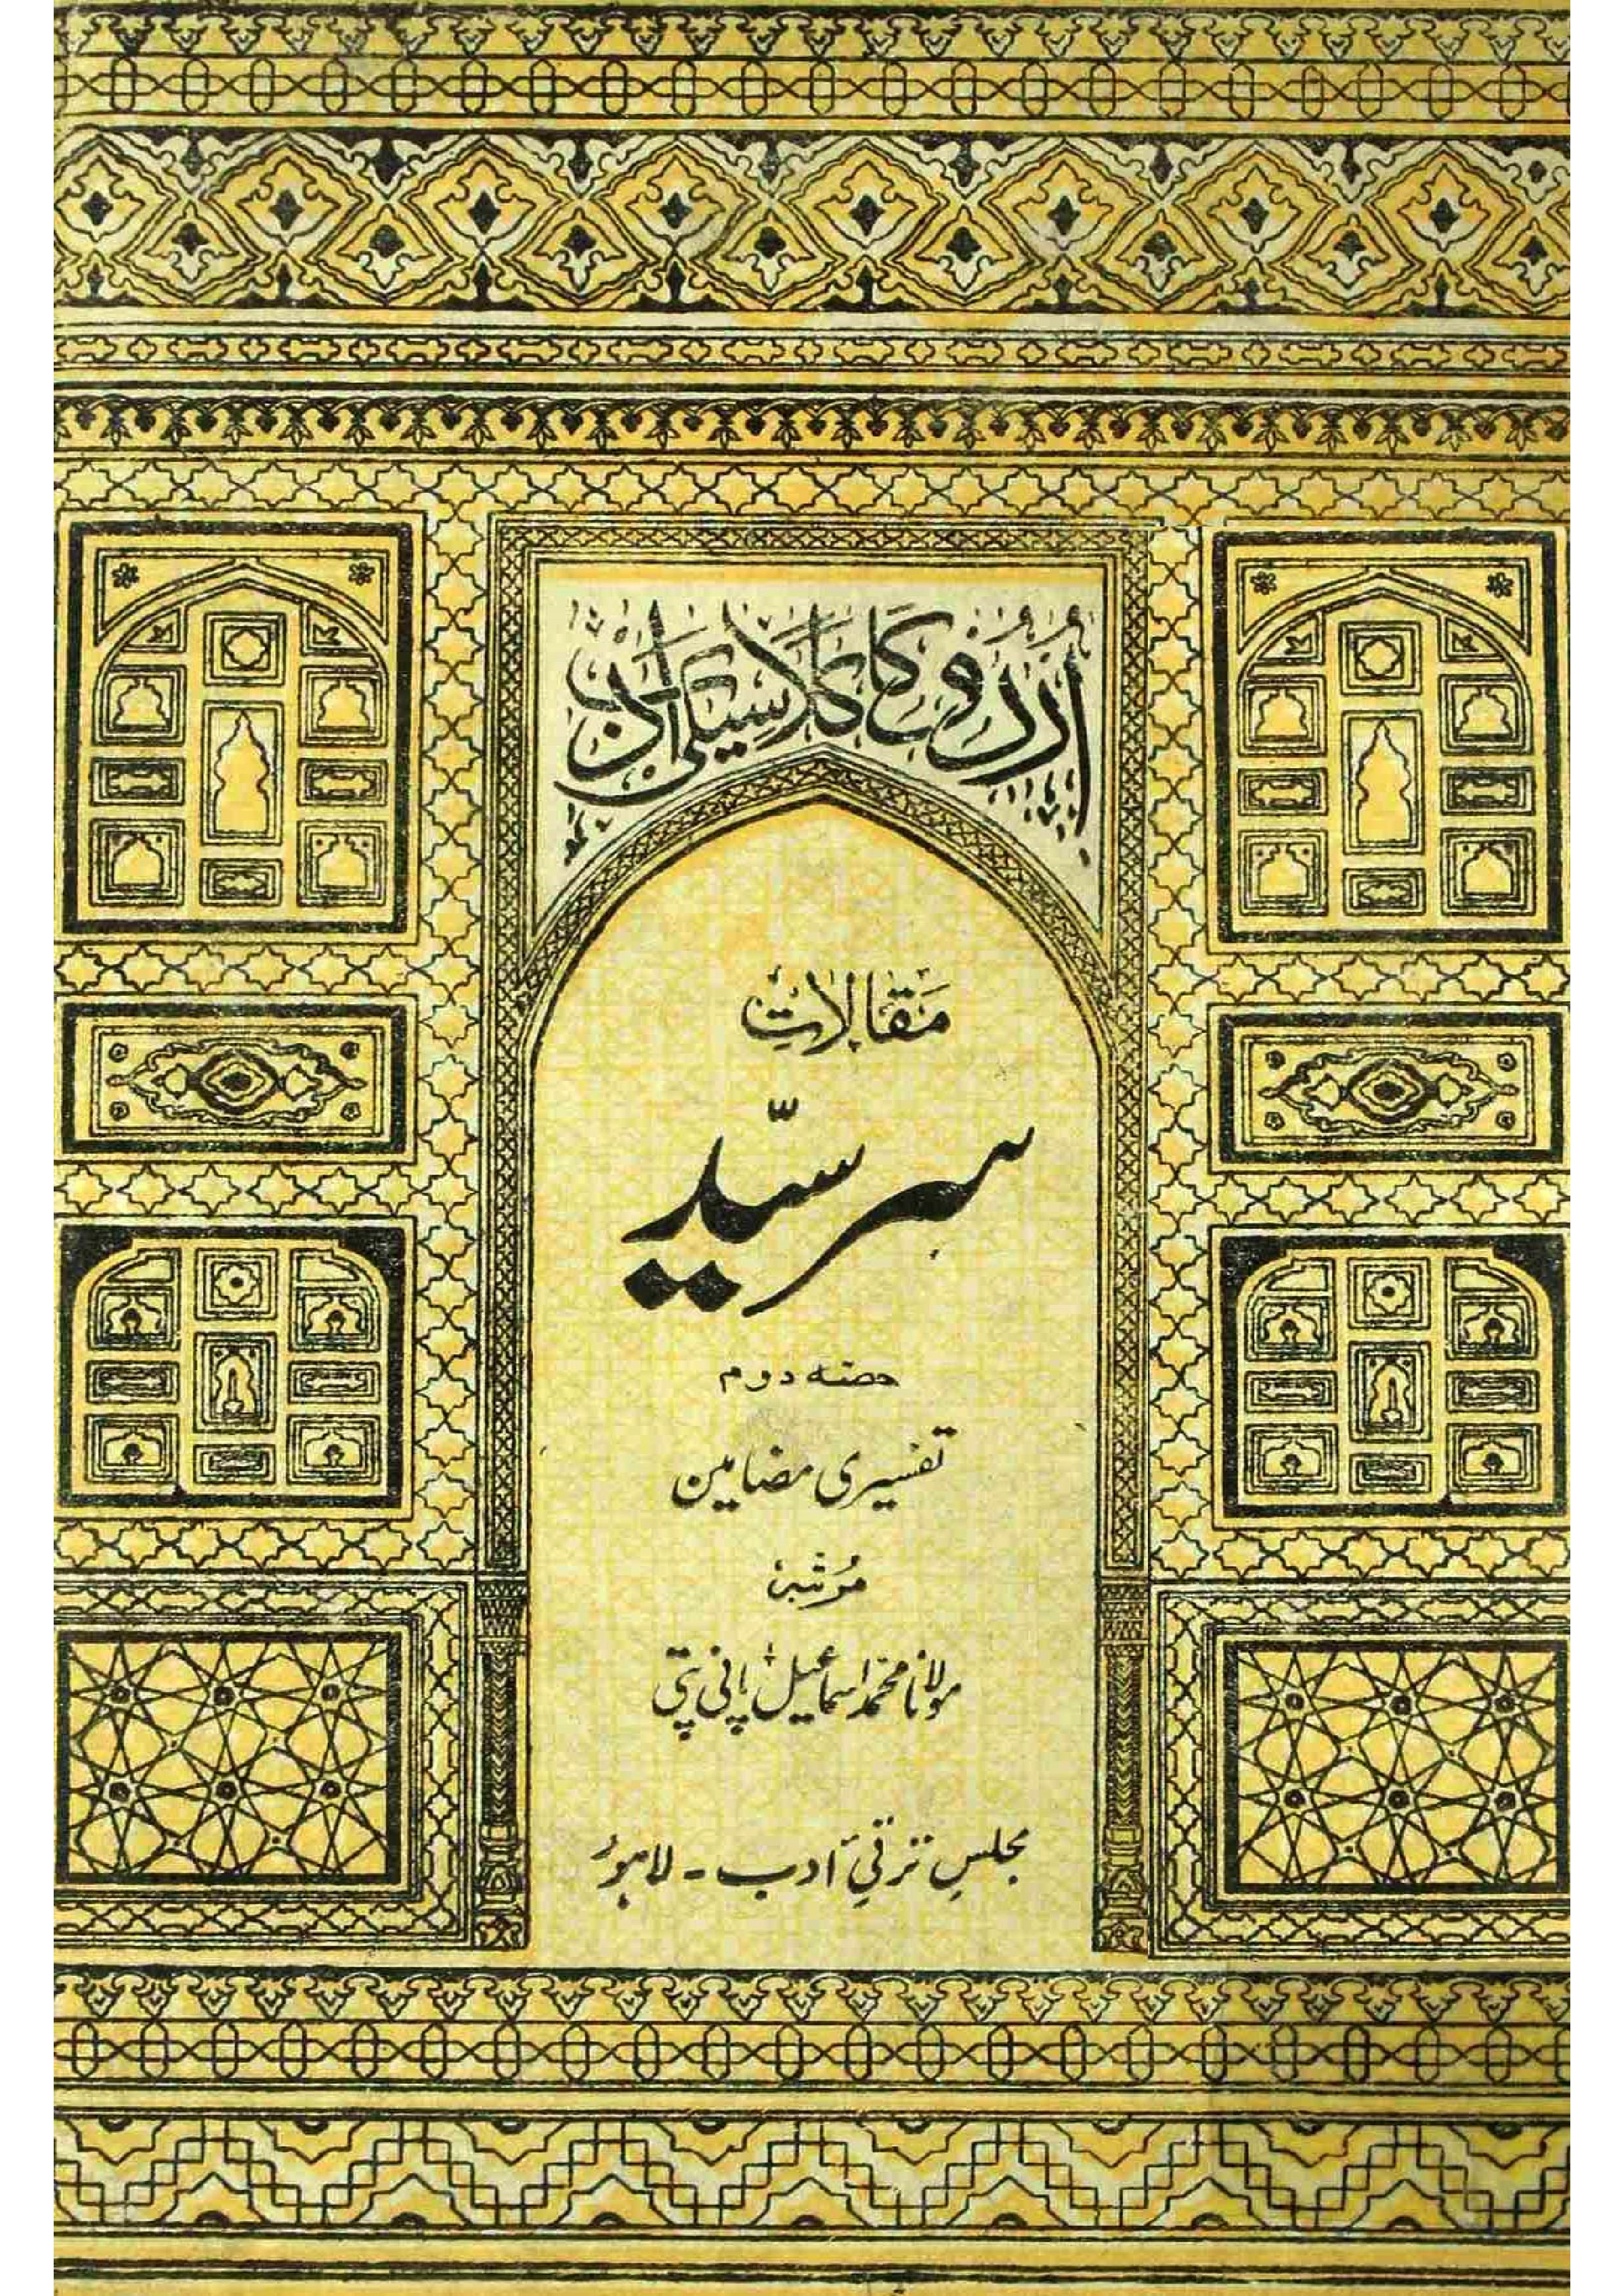 Maqalaat-e-Sir Syyed     Part-002